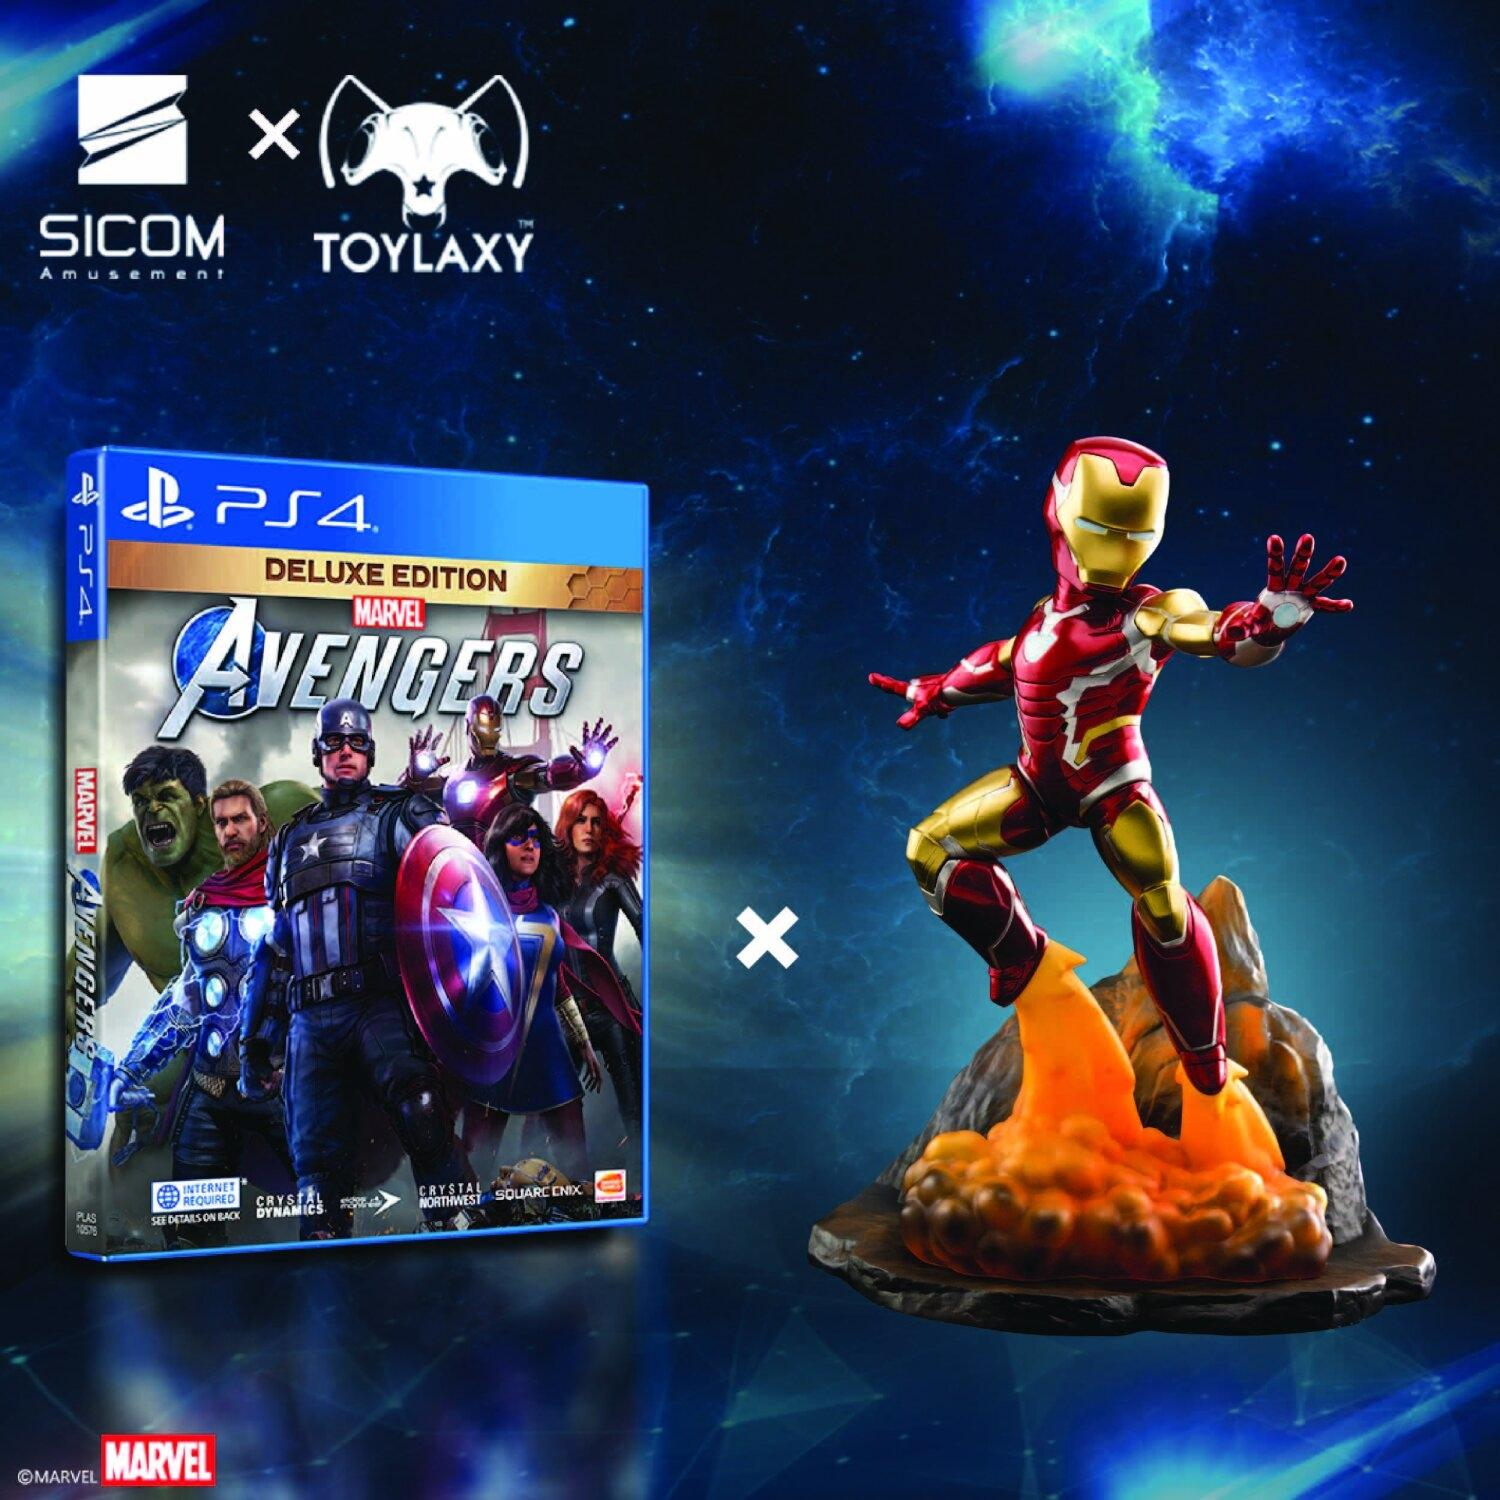 Marvel's Avengers [Deluxe Edition] x Toylaxy's Marvel Avengers Endgame Figure